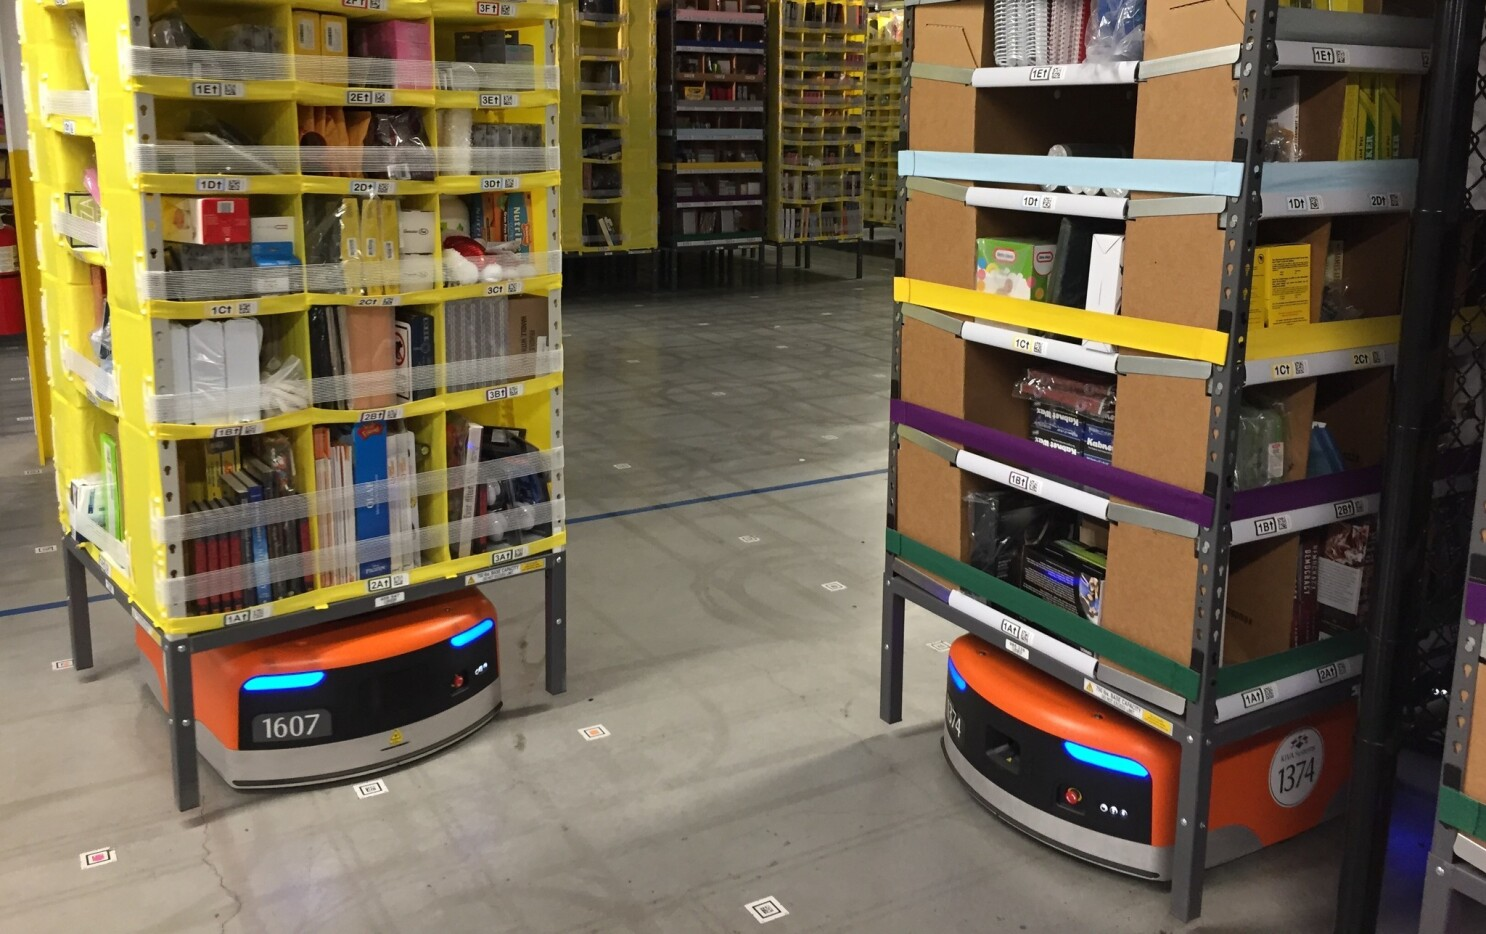 Robots are scaling warehouse shelves to get stuff to you faster - Los Angeles Times